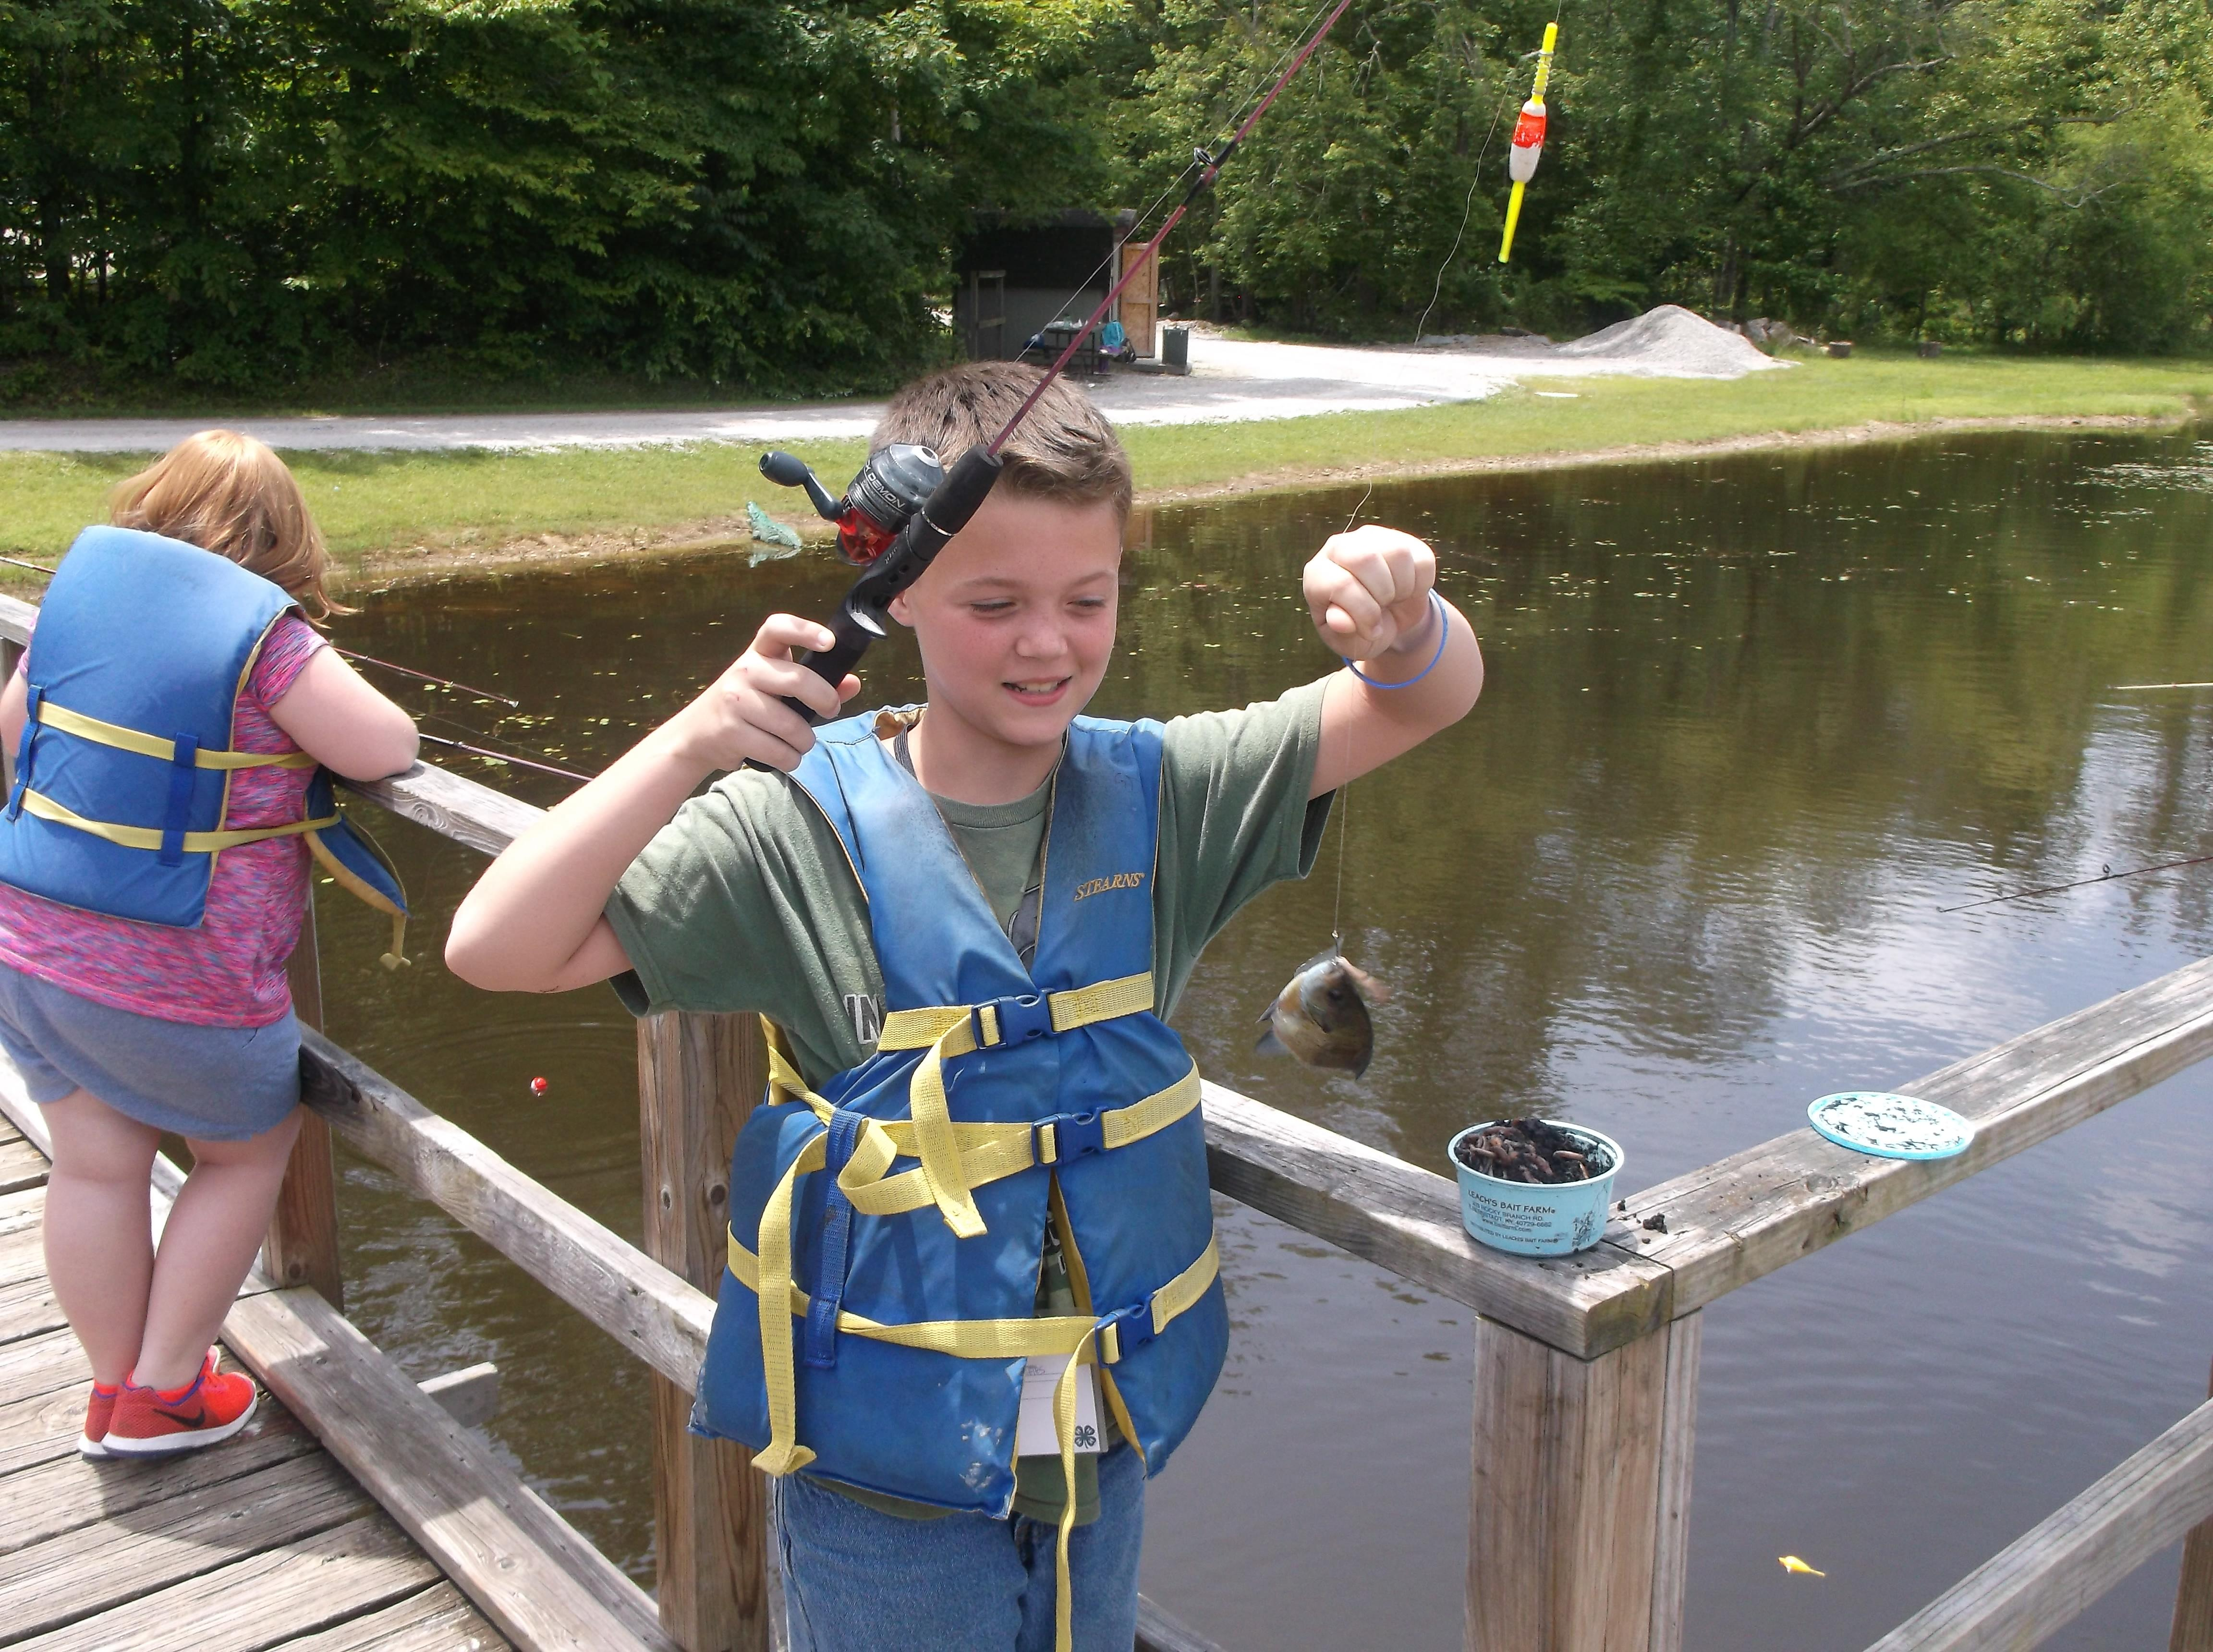 Fishing at 4-H Camp